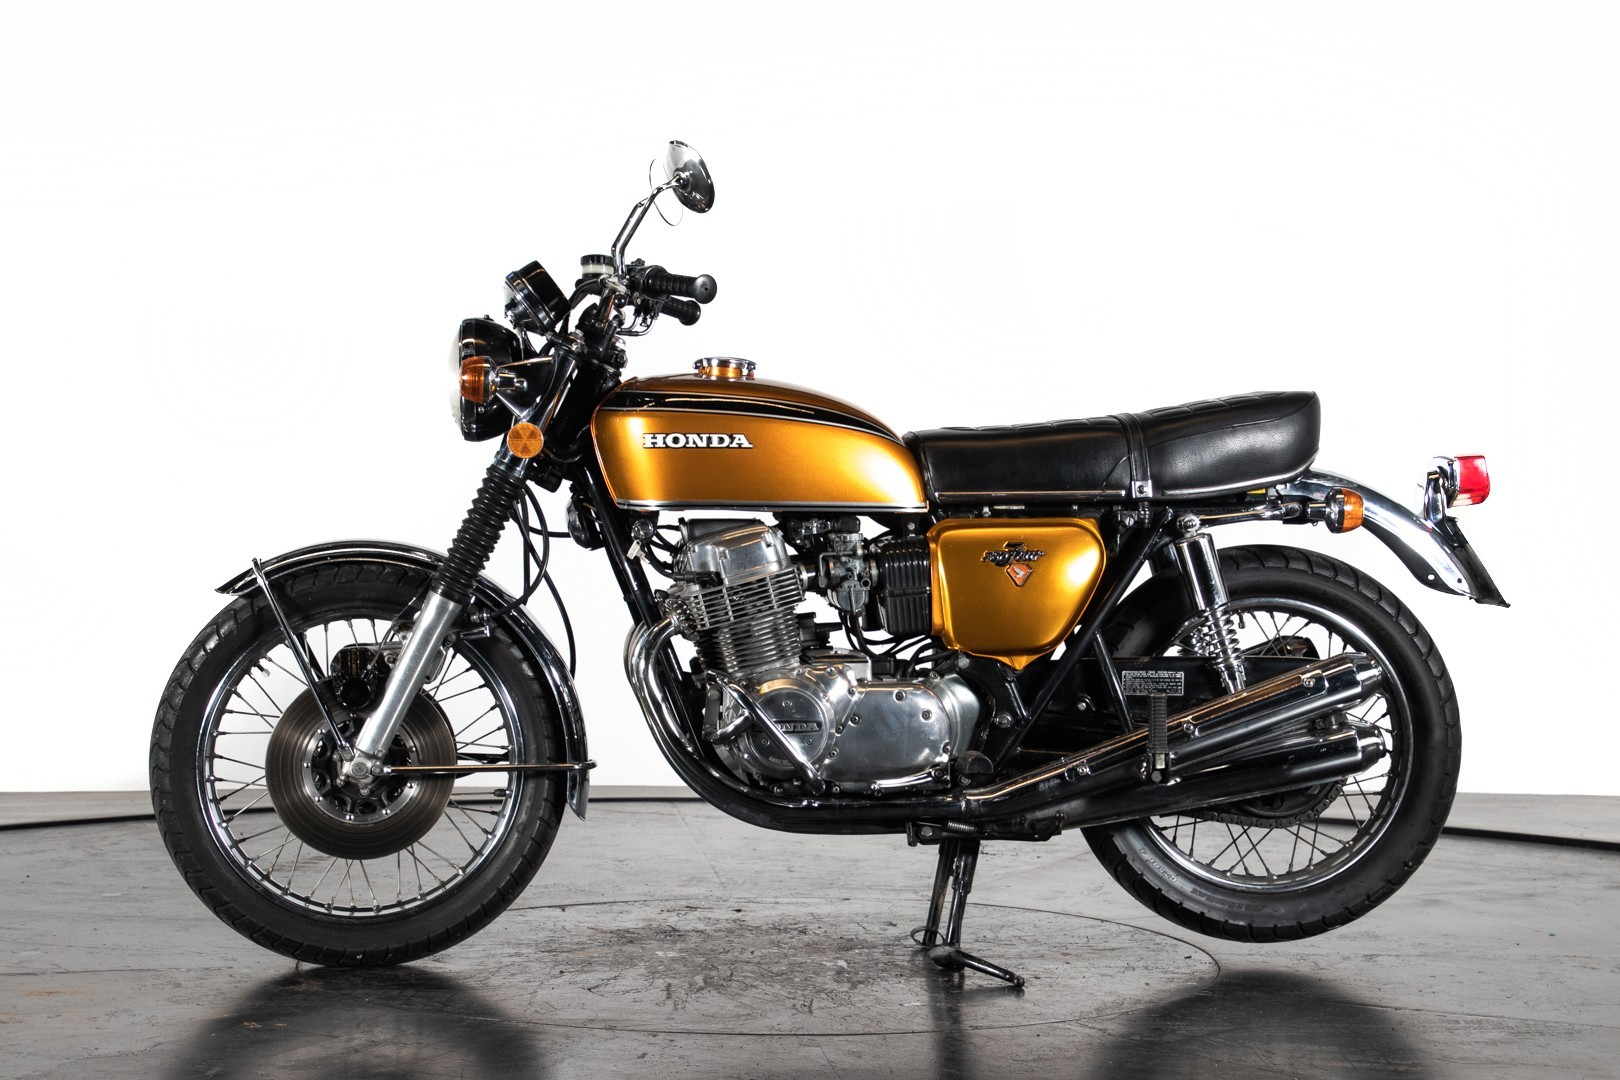 Vintage (used) motorcycles' values: 1972 Honda CB 750 Four, approx. approx. $14,908. for sale